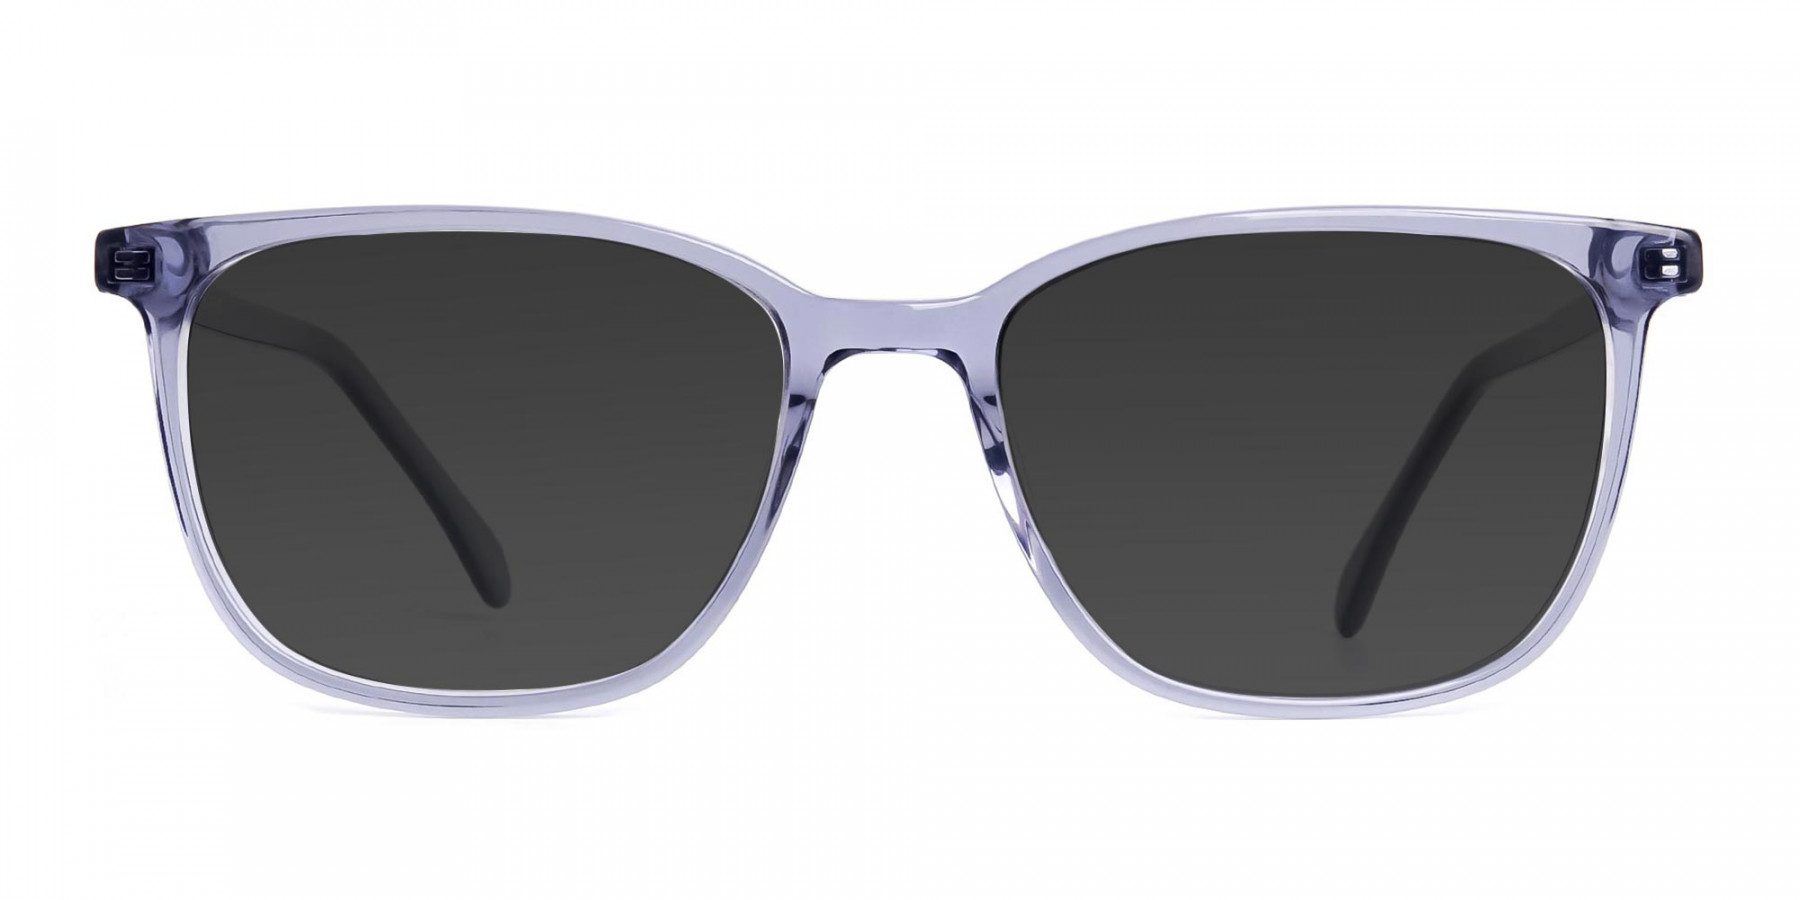 space-grey-wayfarer-and-rectangular-brown-tinted-sunglasses-frames-3